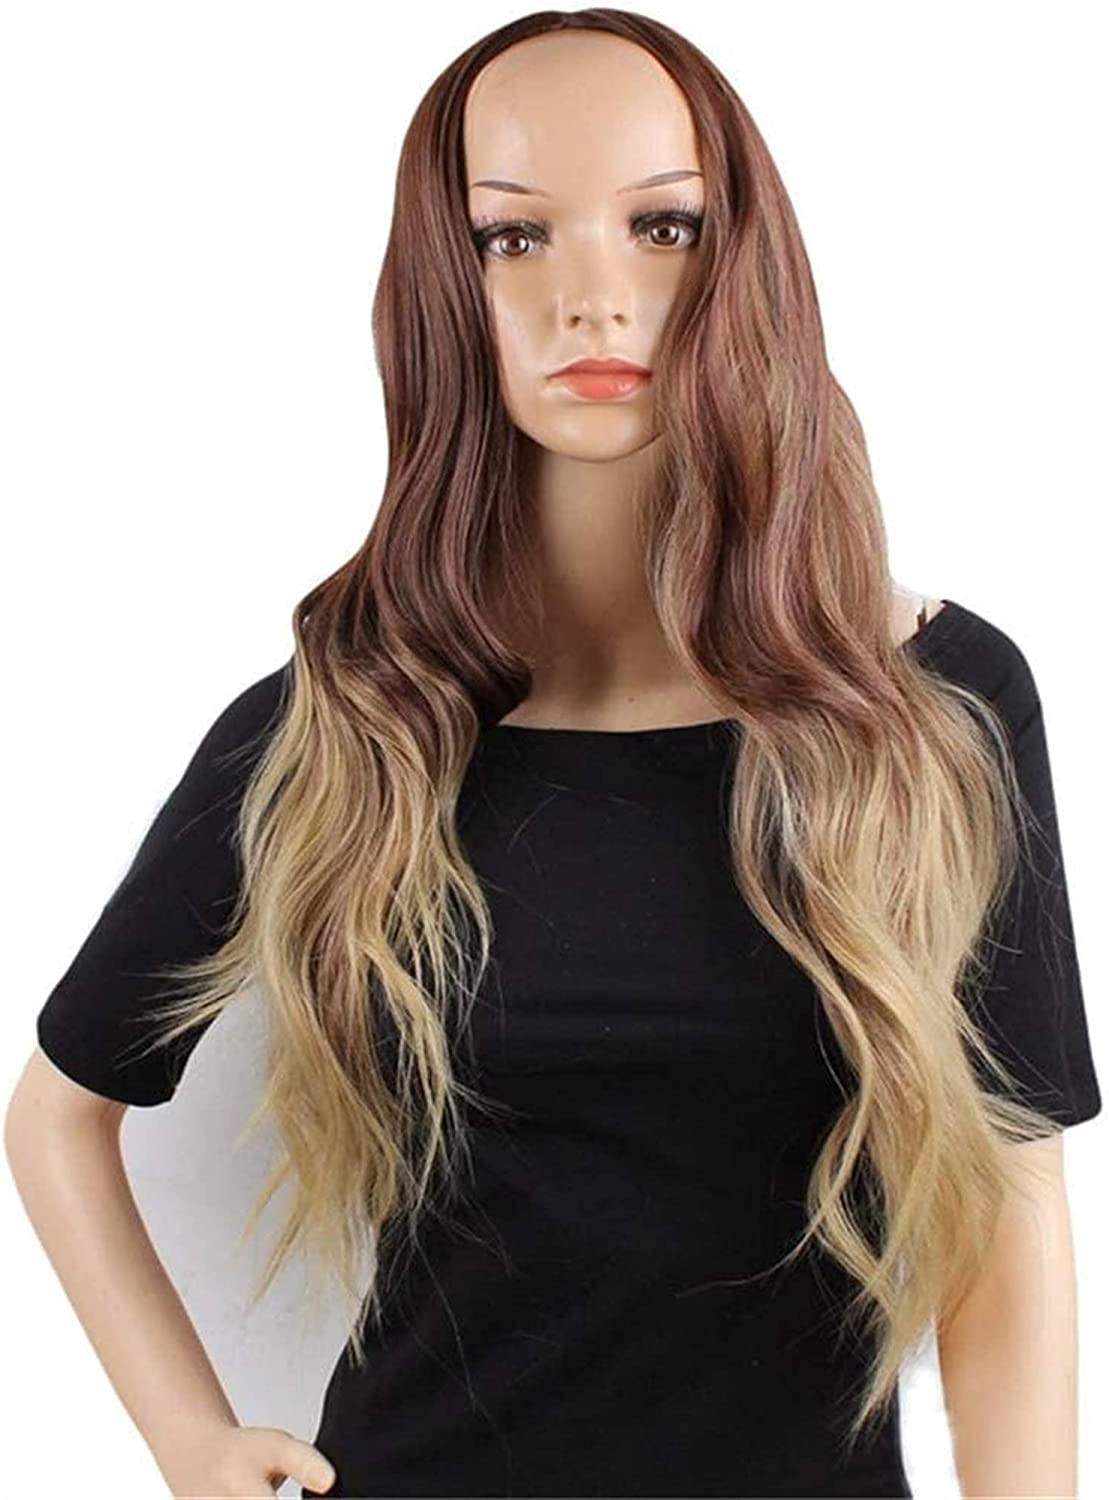 Finally resale start LCNING Wig Wigs Brown to Blonde Long M Curly Mesa Mall Wave Dark Roots